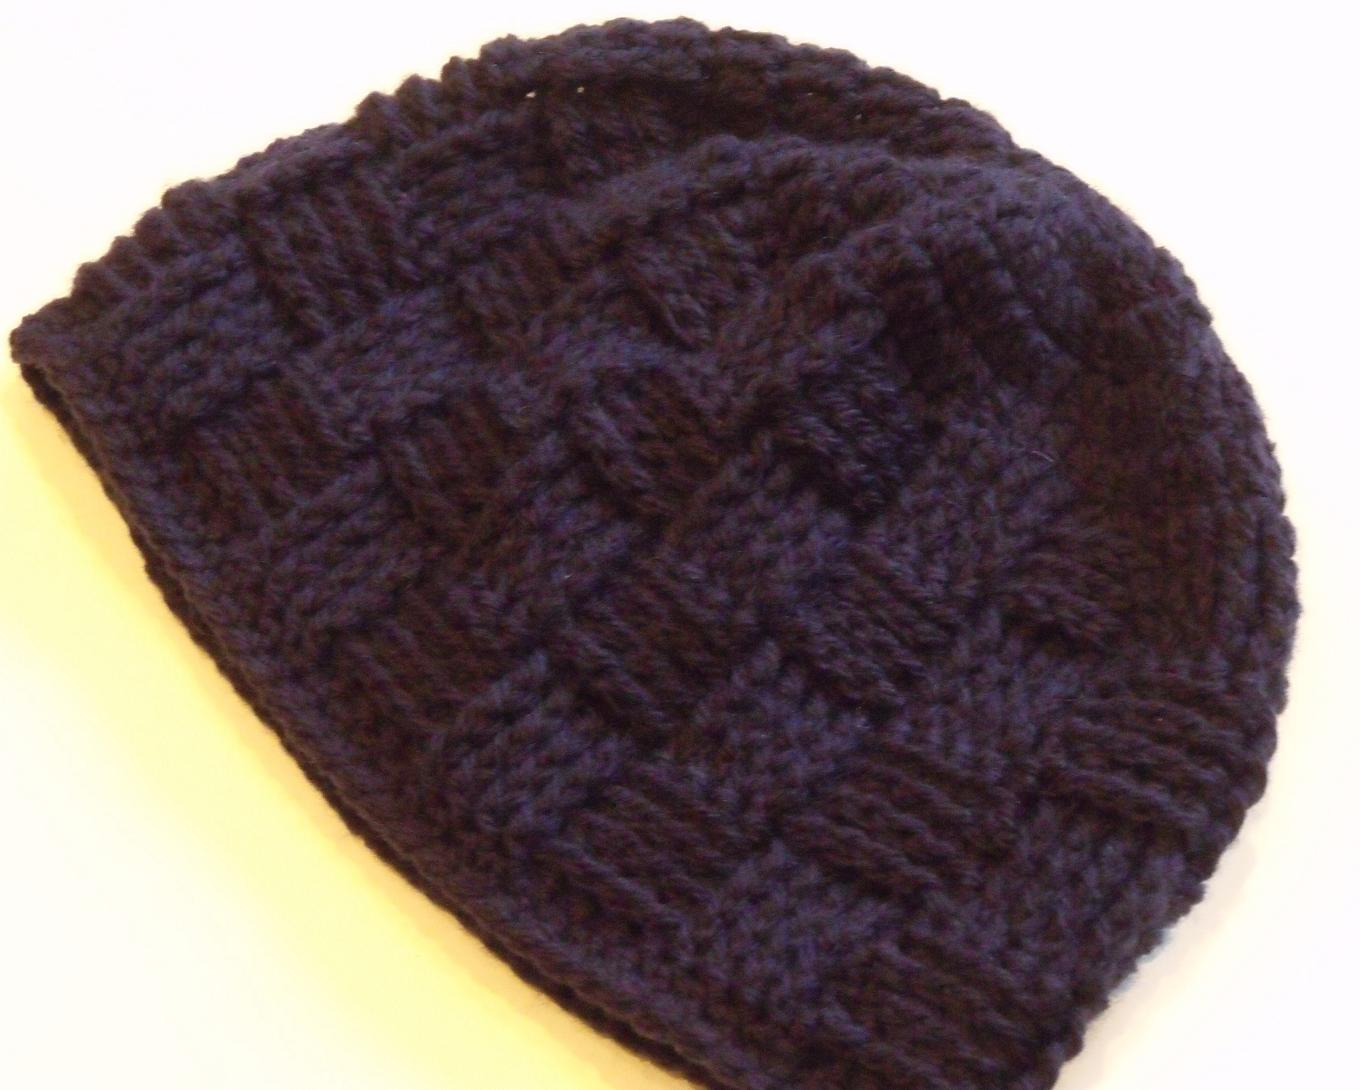 Basket Weave Crochet Neck Warmer FaveCrafts.com